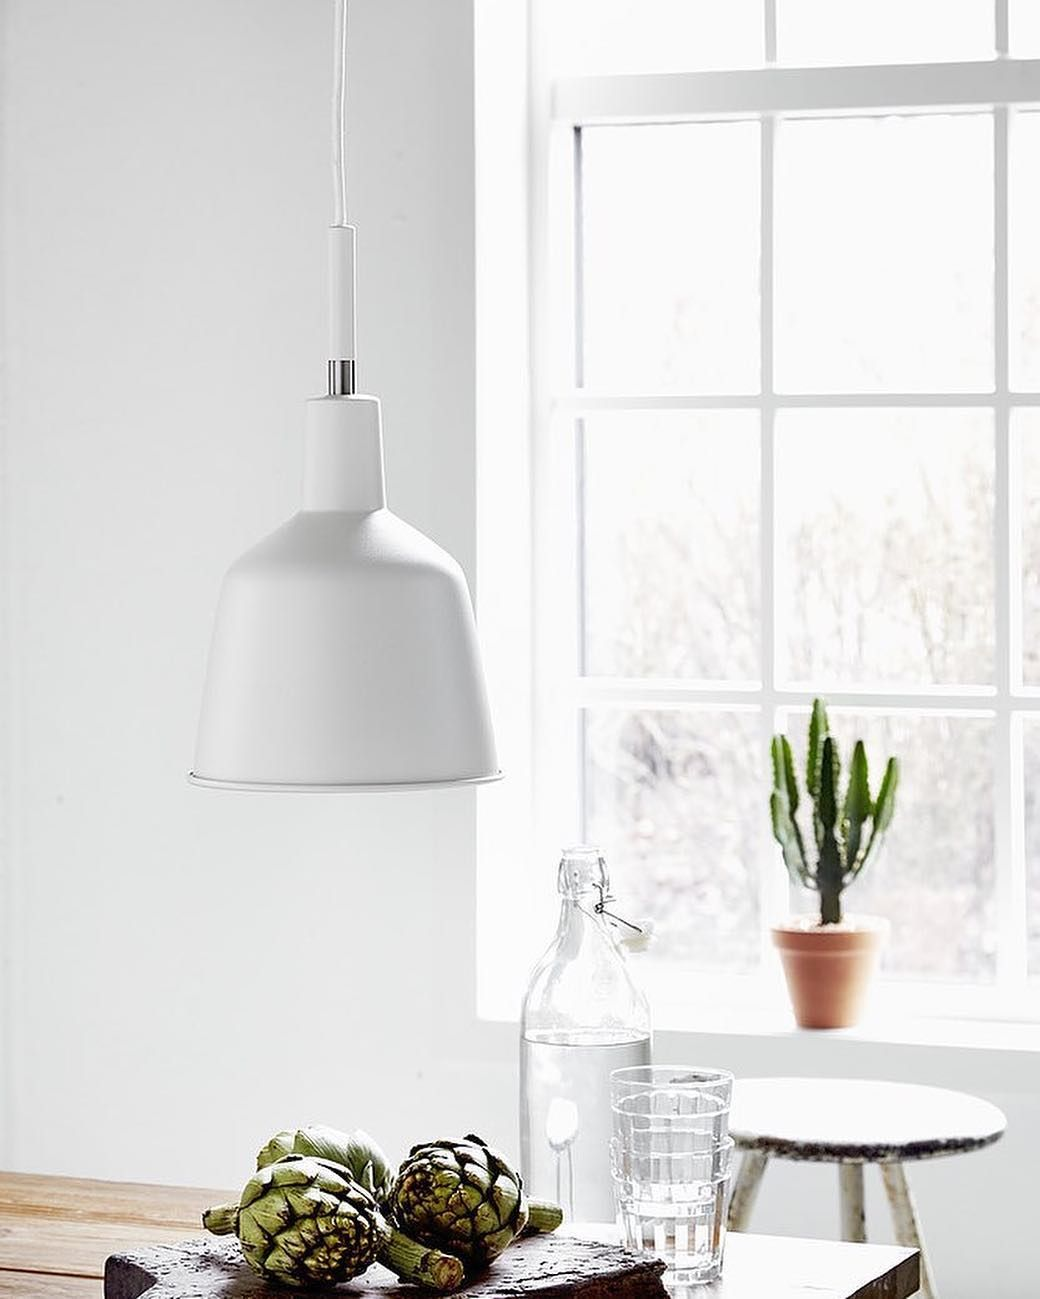 Nordlux Patton - an exciting and stylish lamp collection ...